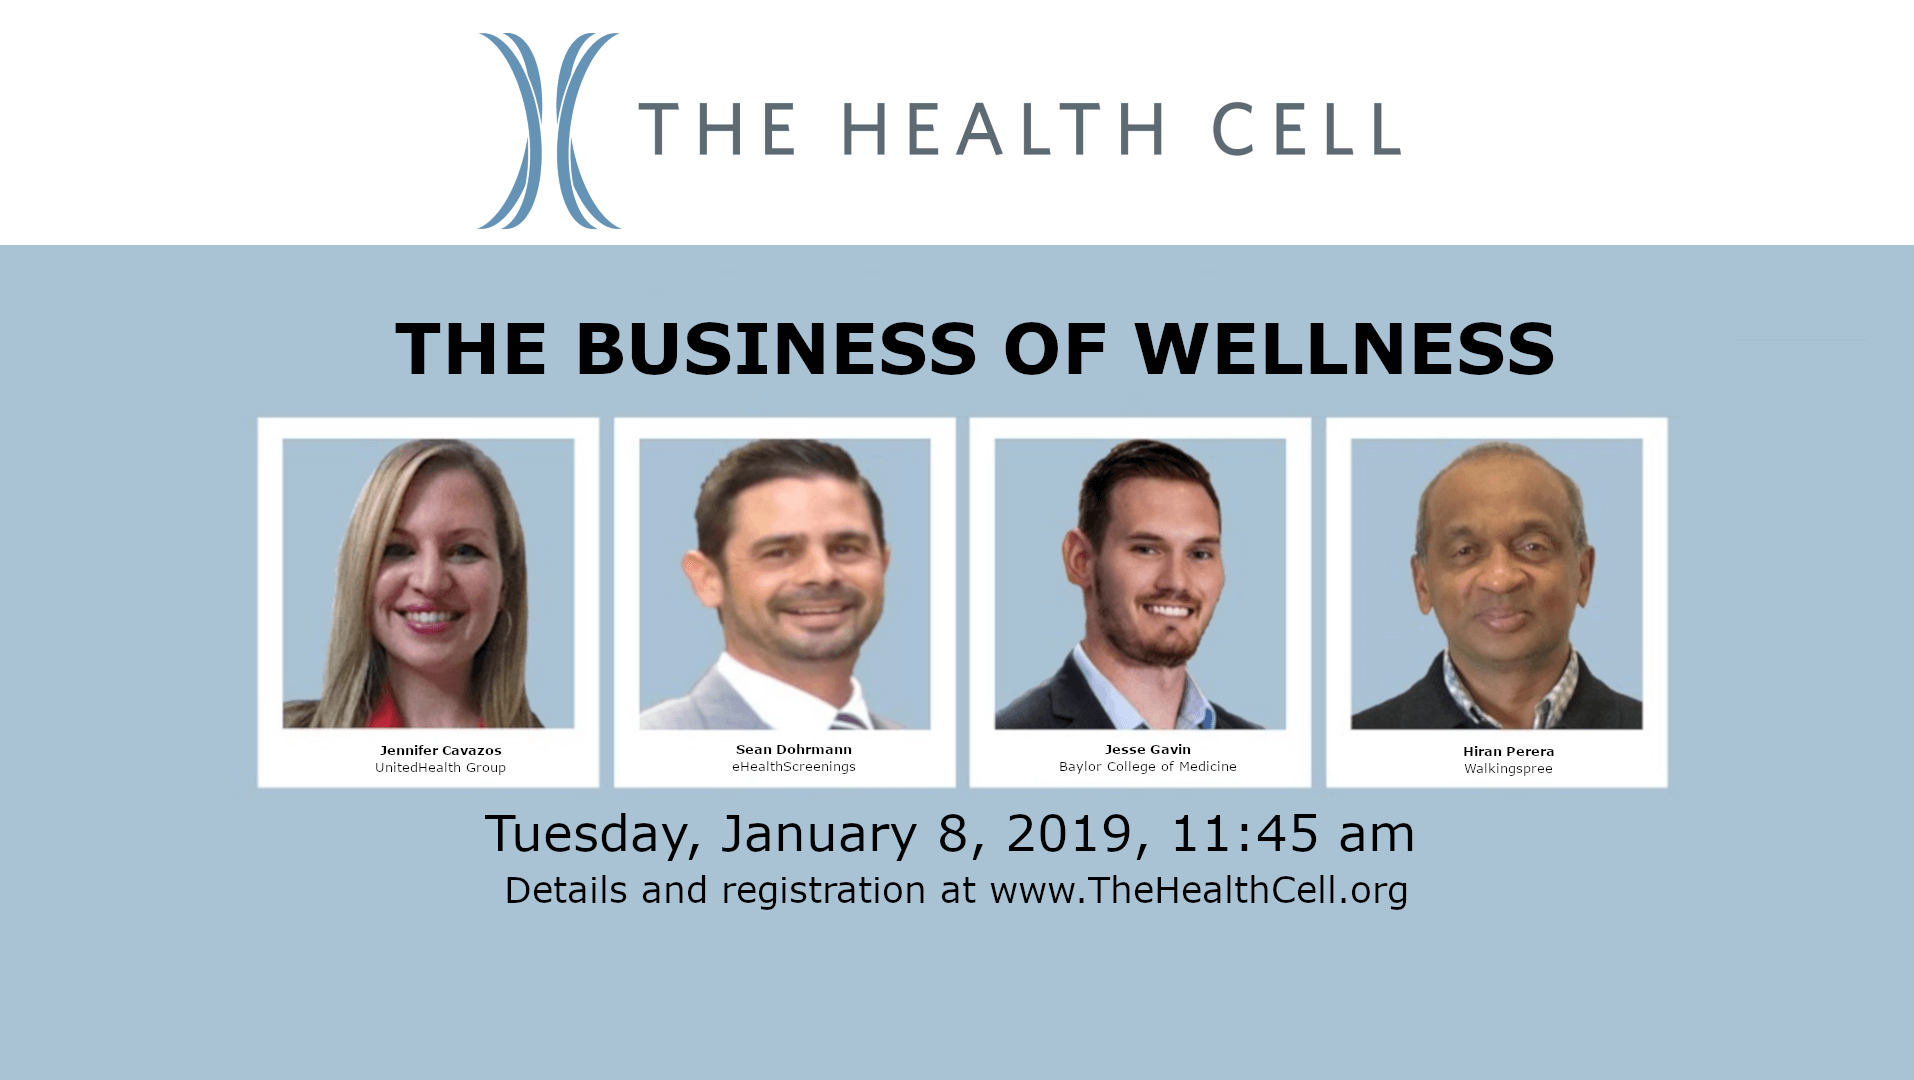 The Business of Wellness – The Health Cell Event